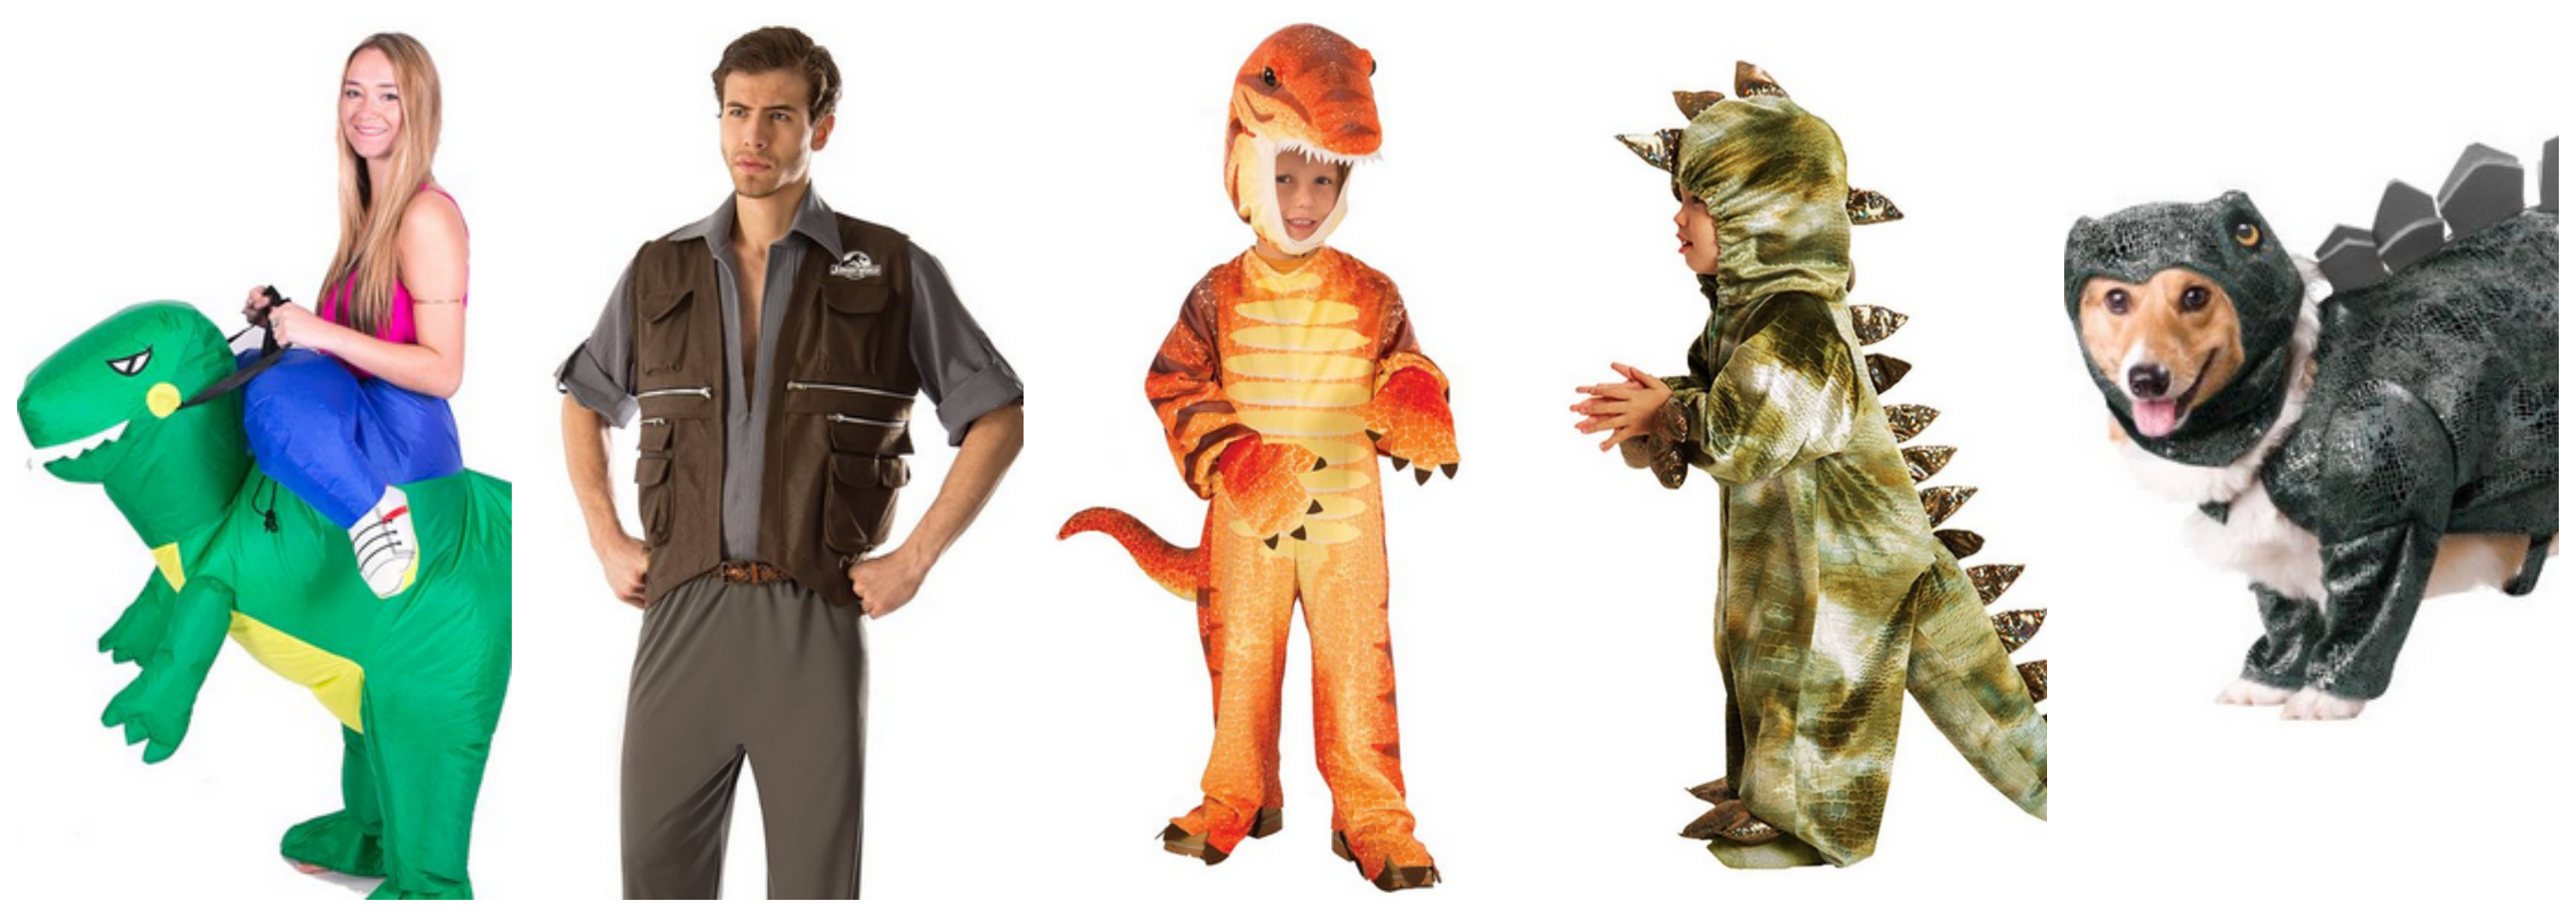 Jurassic World family Halloween costume idea